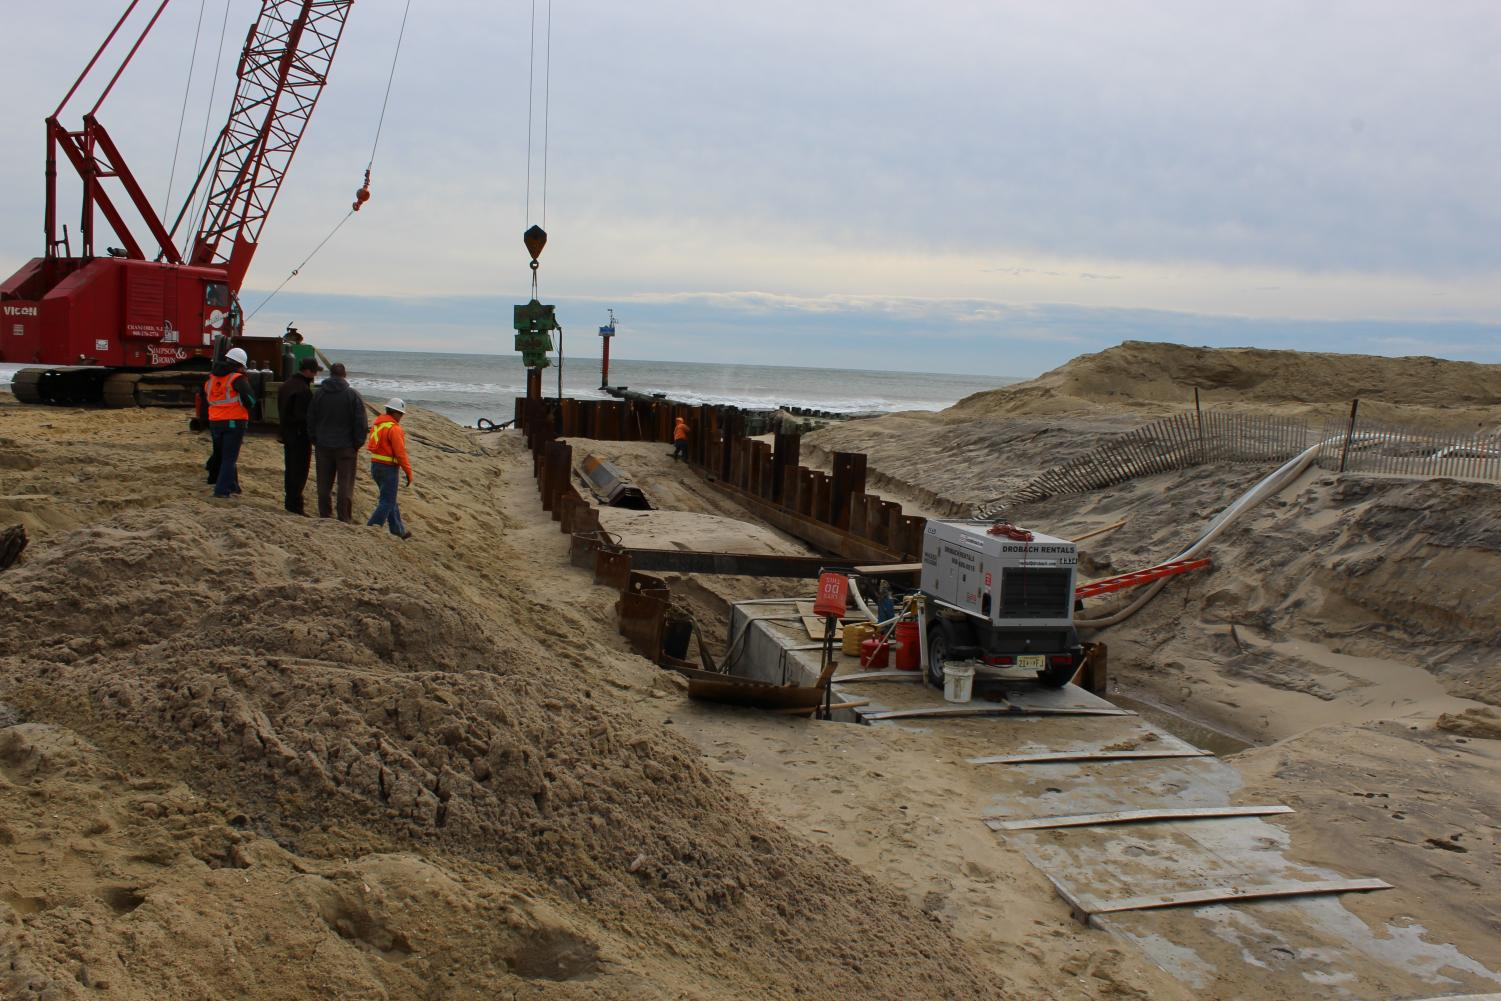 Wreck Pond underwent dune restoration in 2015 to connect the pond to the ocean through a 600 foot culvert. https://creativecommons.org/licenses/by/2.0/